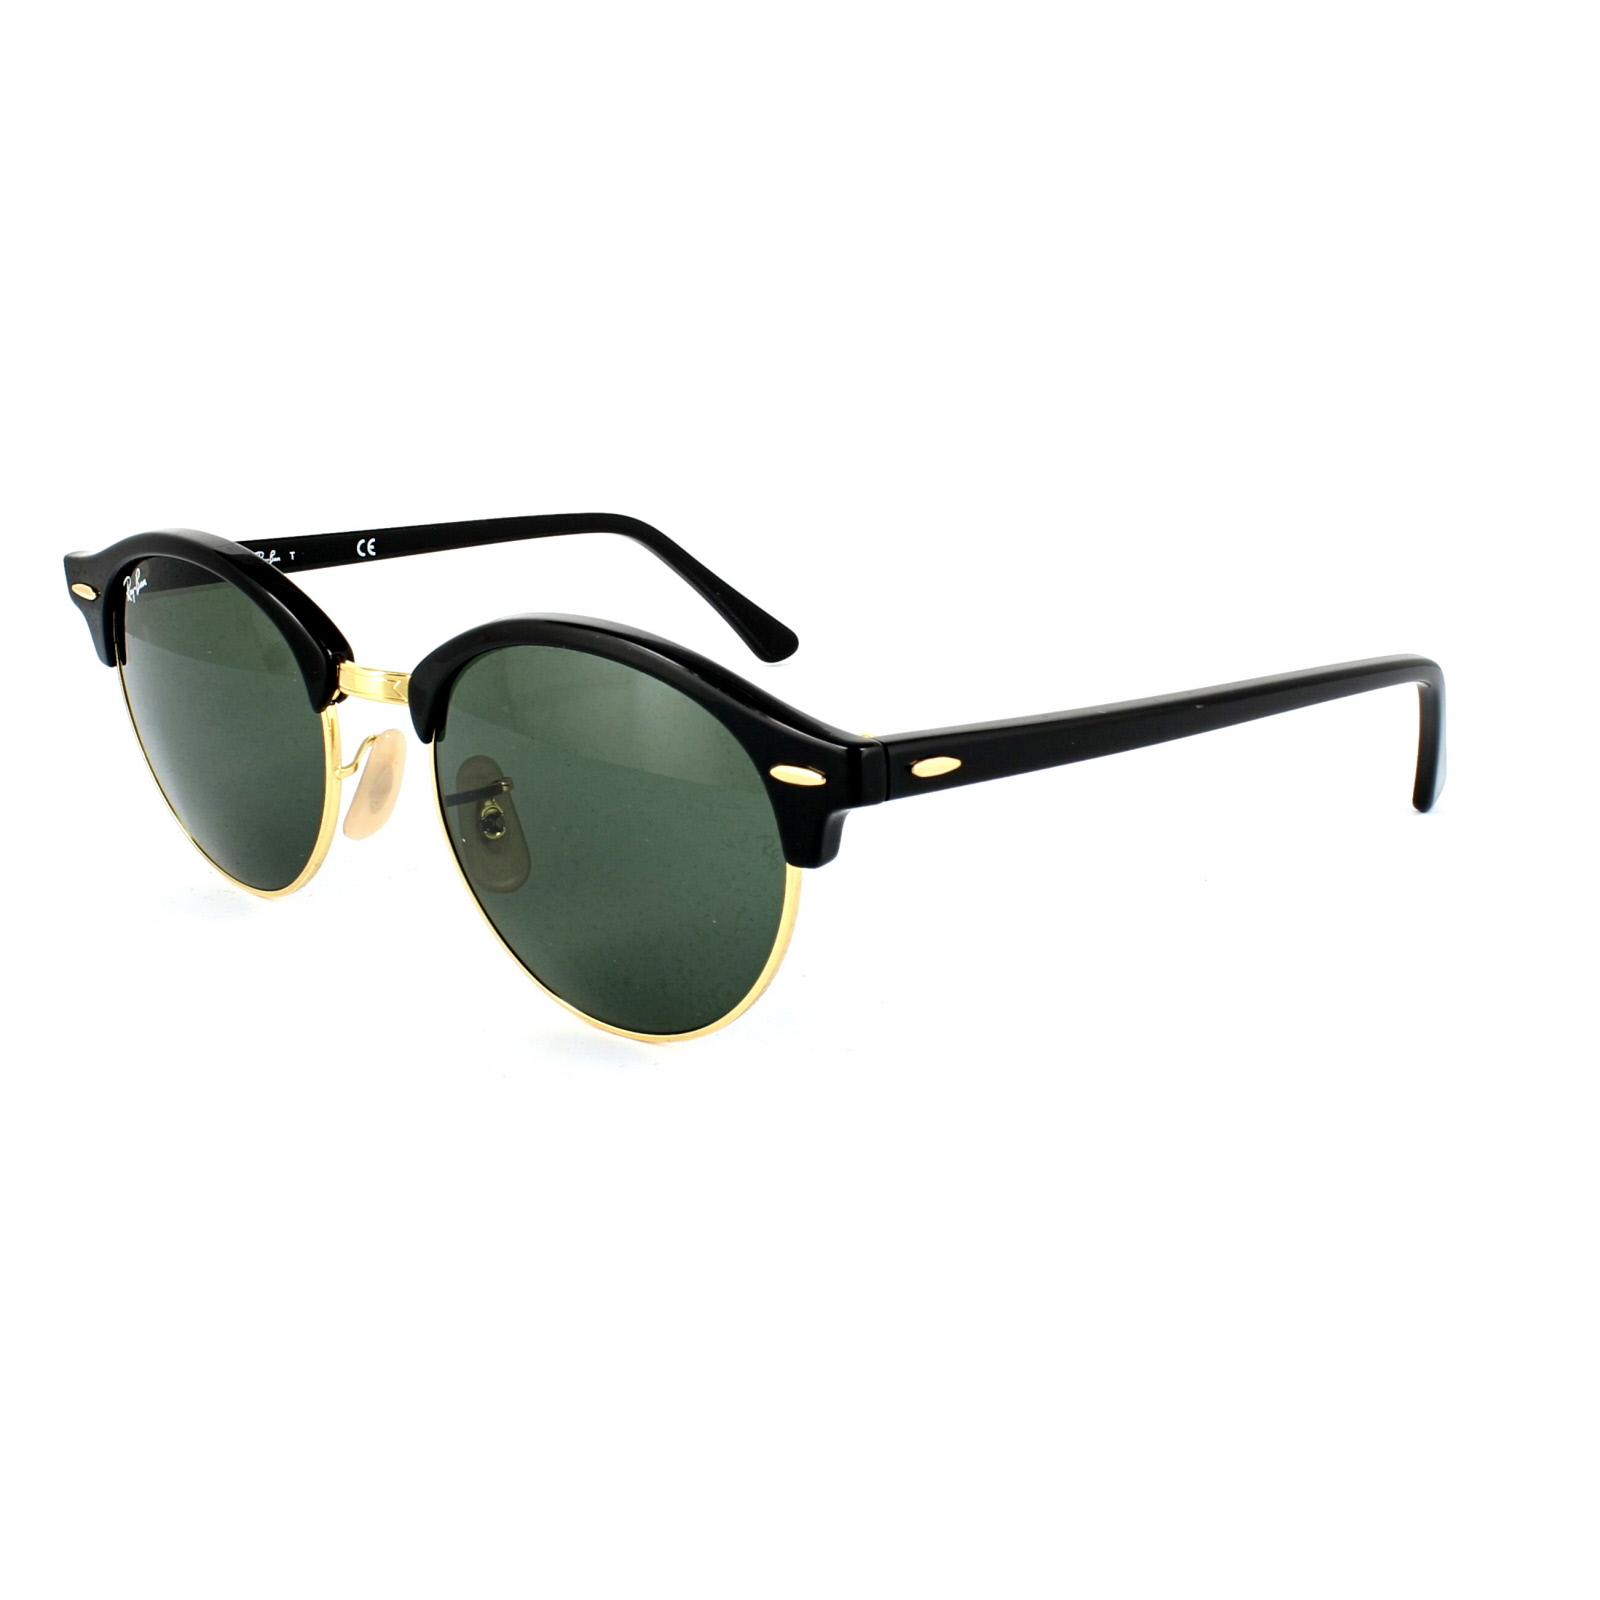 cheap ray ban clubround 4246 sunglasses discounted sunglasses. Black Bedroom Furniture Sets. Home Design Ideas